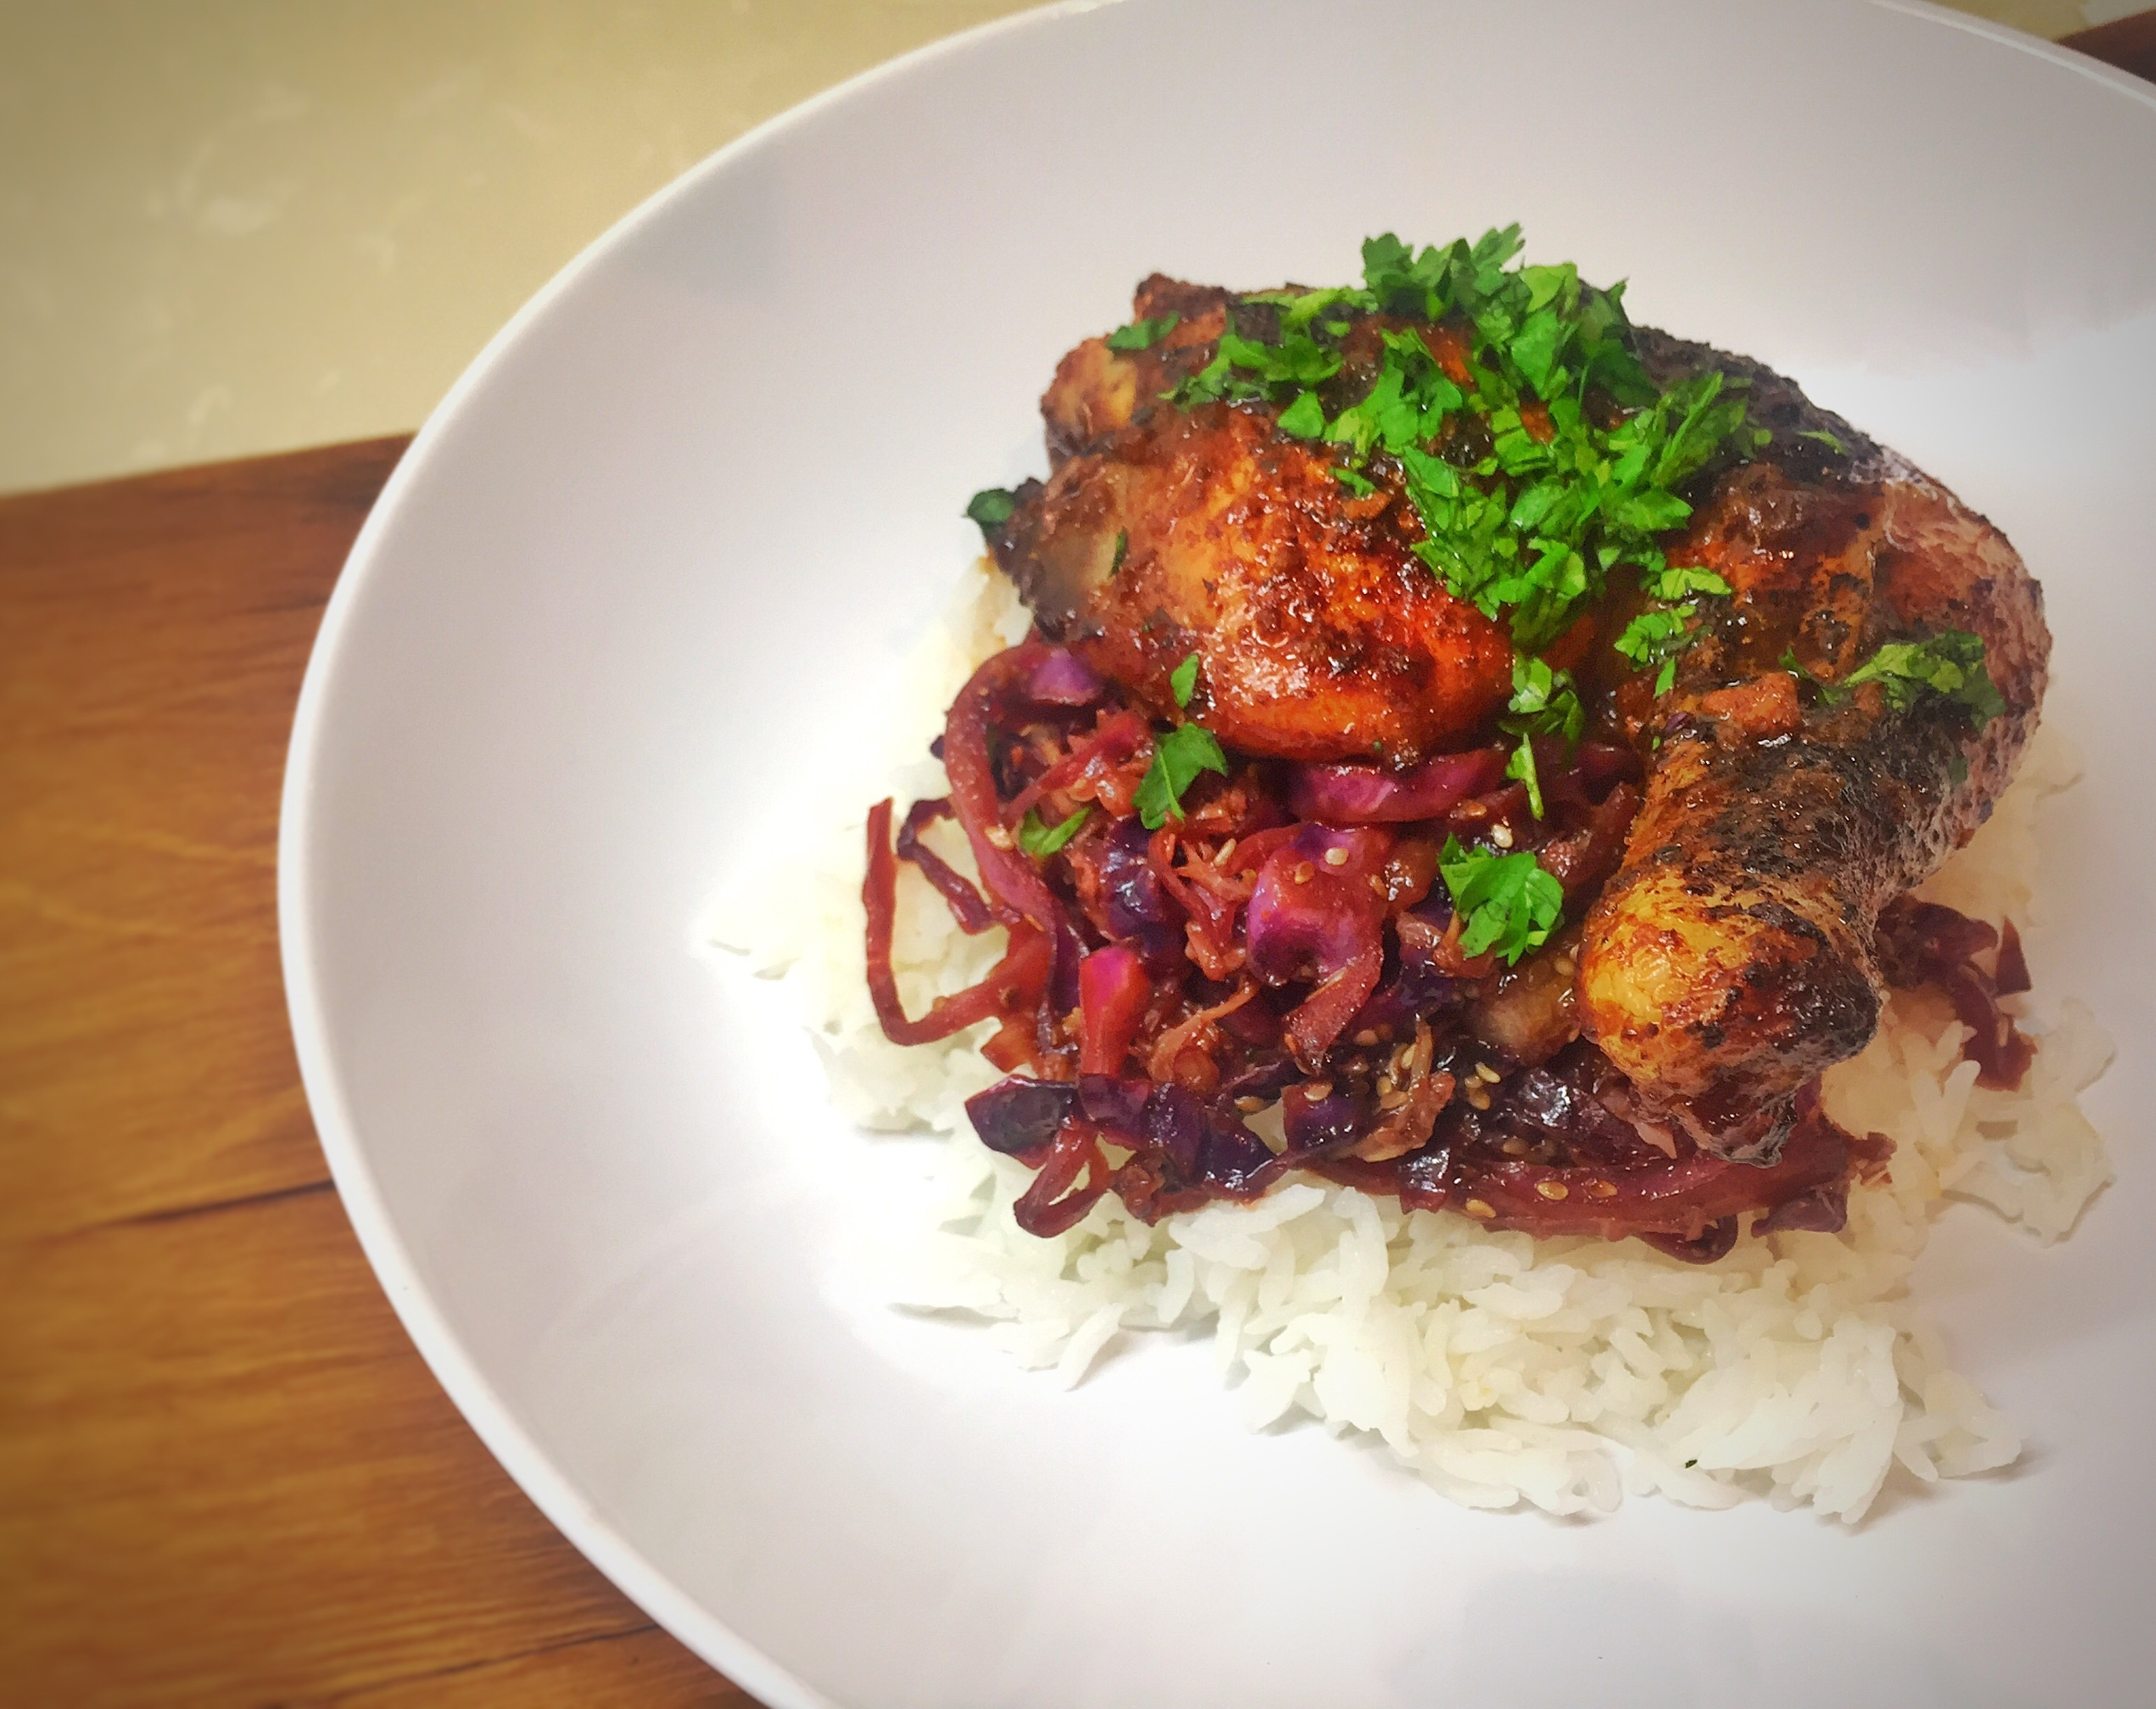 Orange Ginger Chicken with Warm Slaw